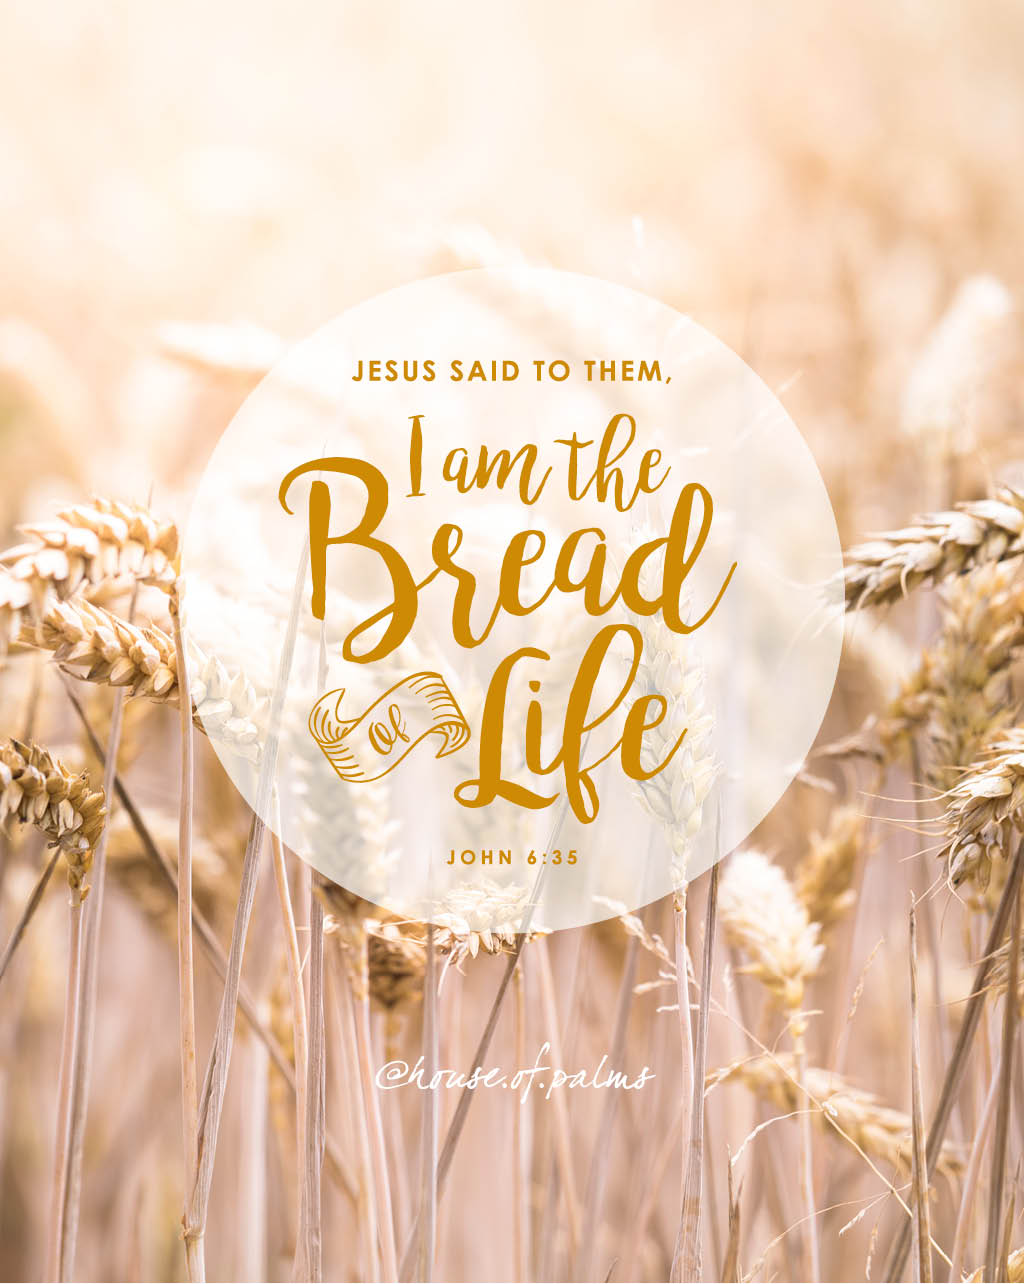 Jesus said to them, I am the bread of life